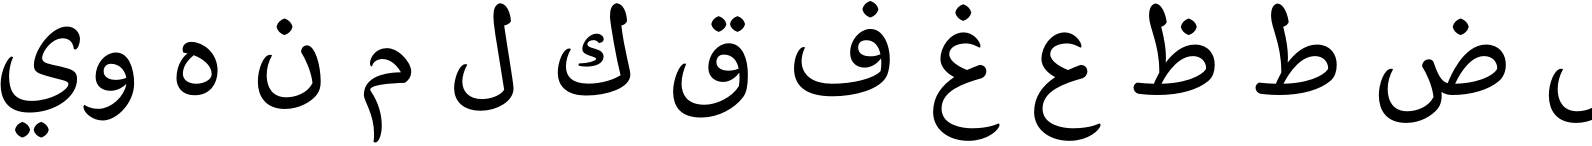 Baldufa Arabic Regular